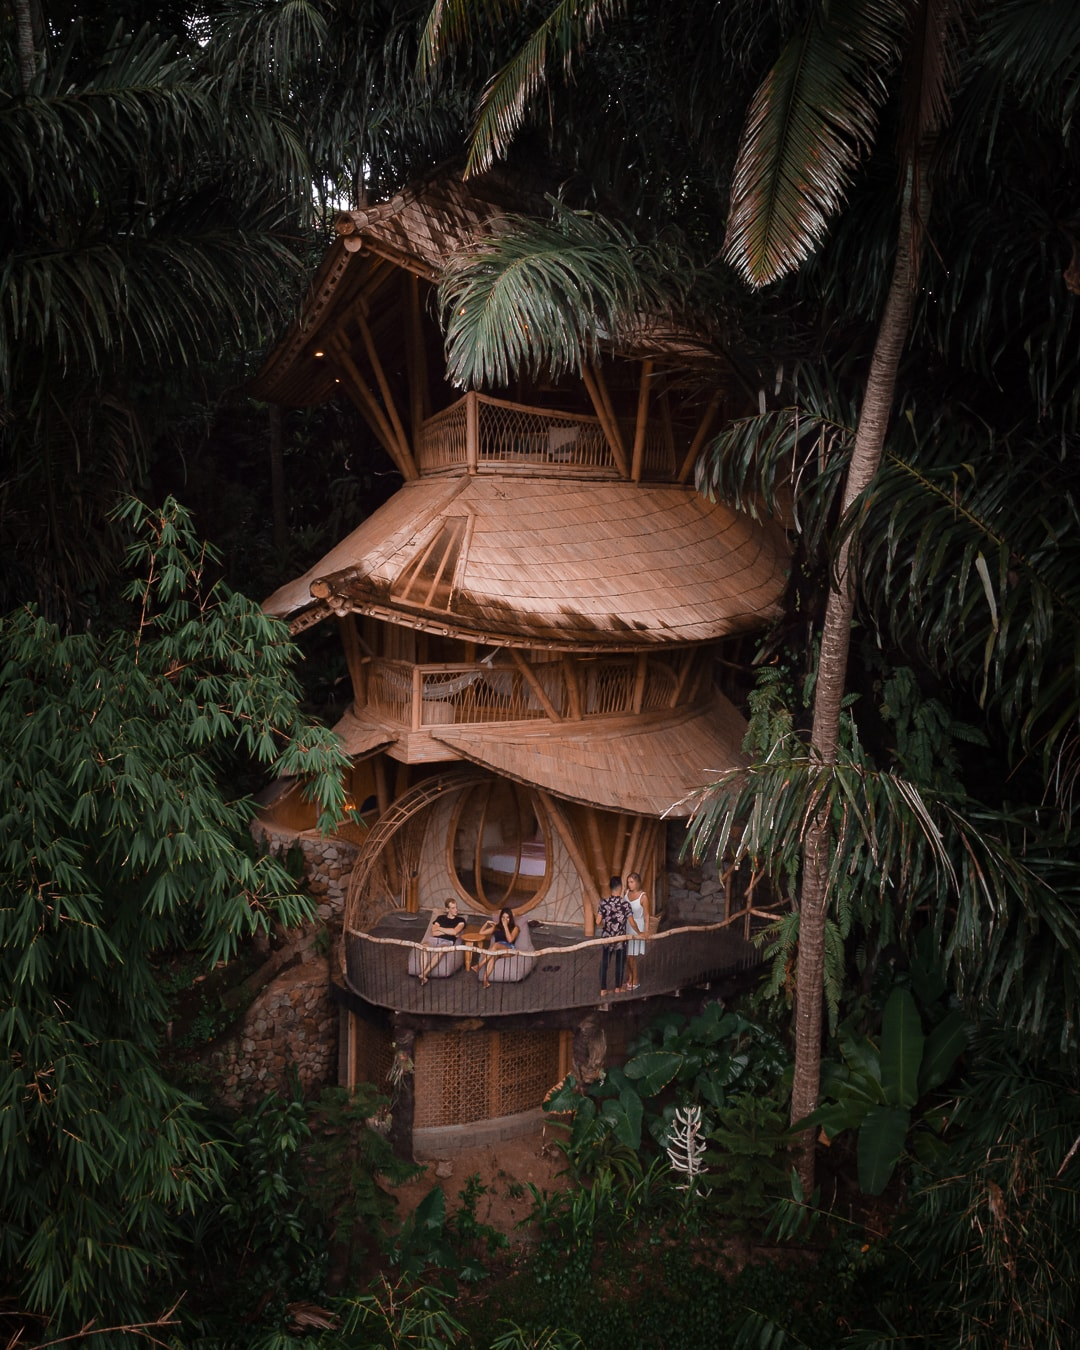 A drone picture from the famous Aura House in Bali, Indonesia.